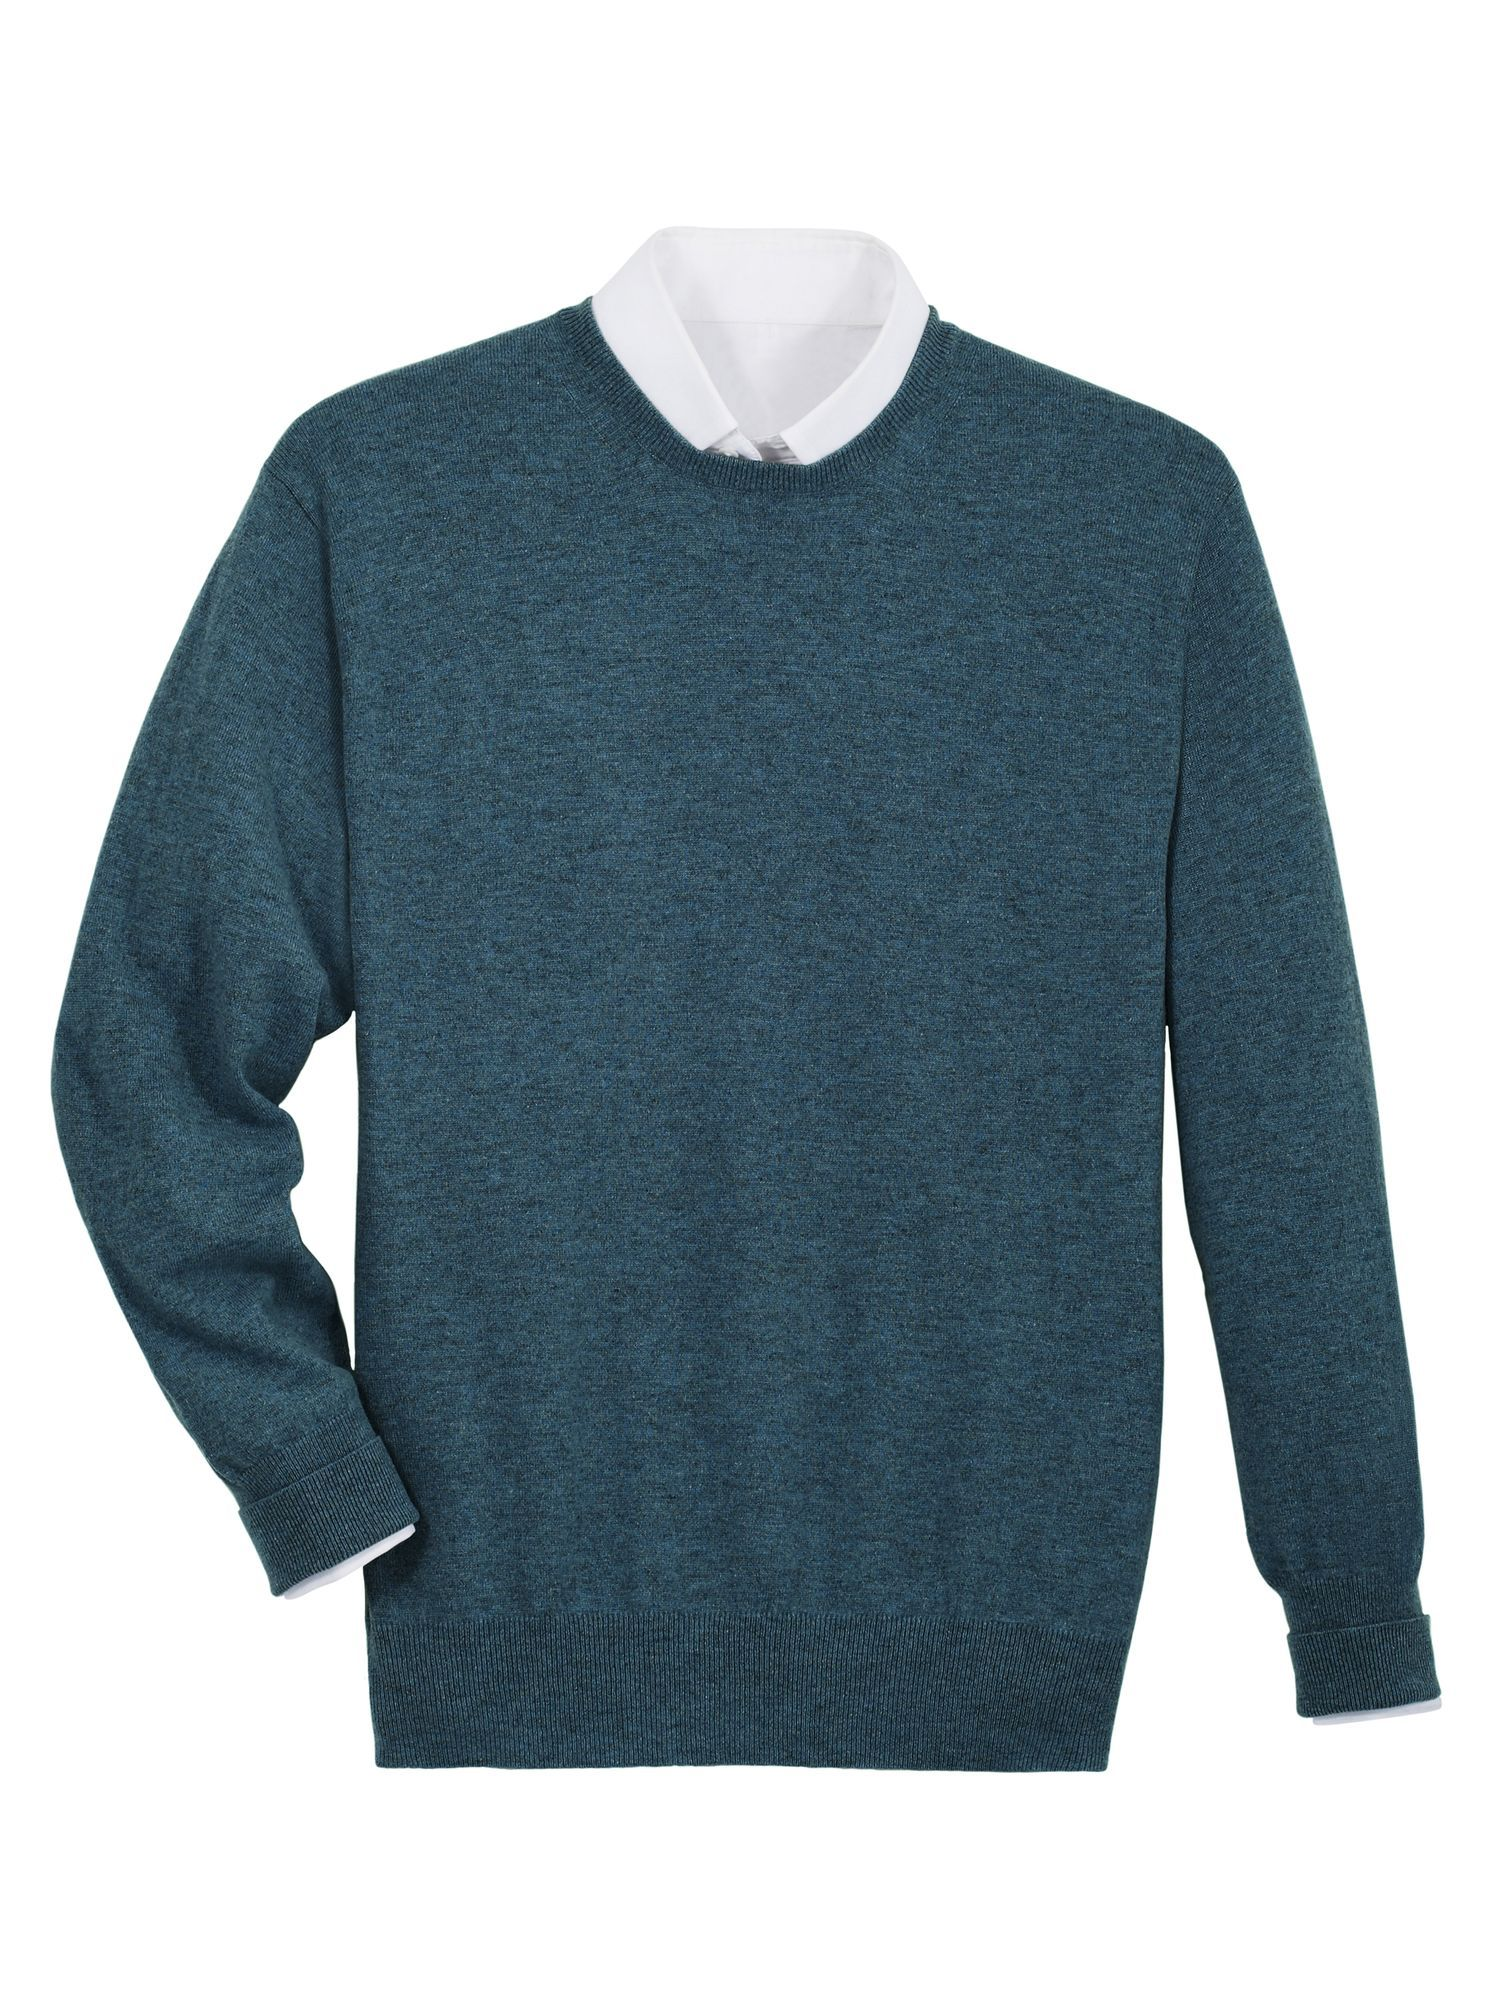 Heading to the Scottish Highlands? N.Peal 100% cashmere